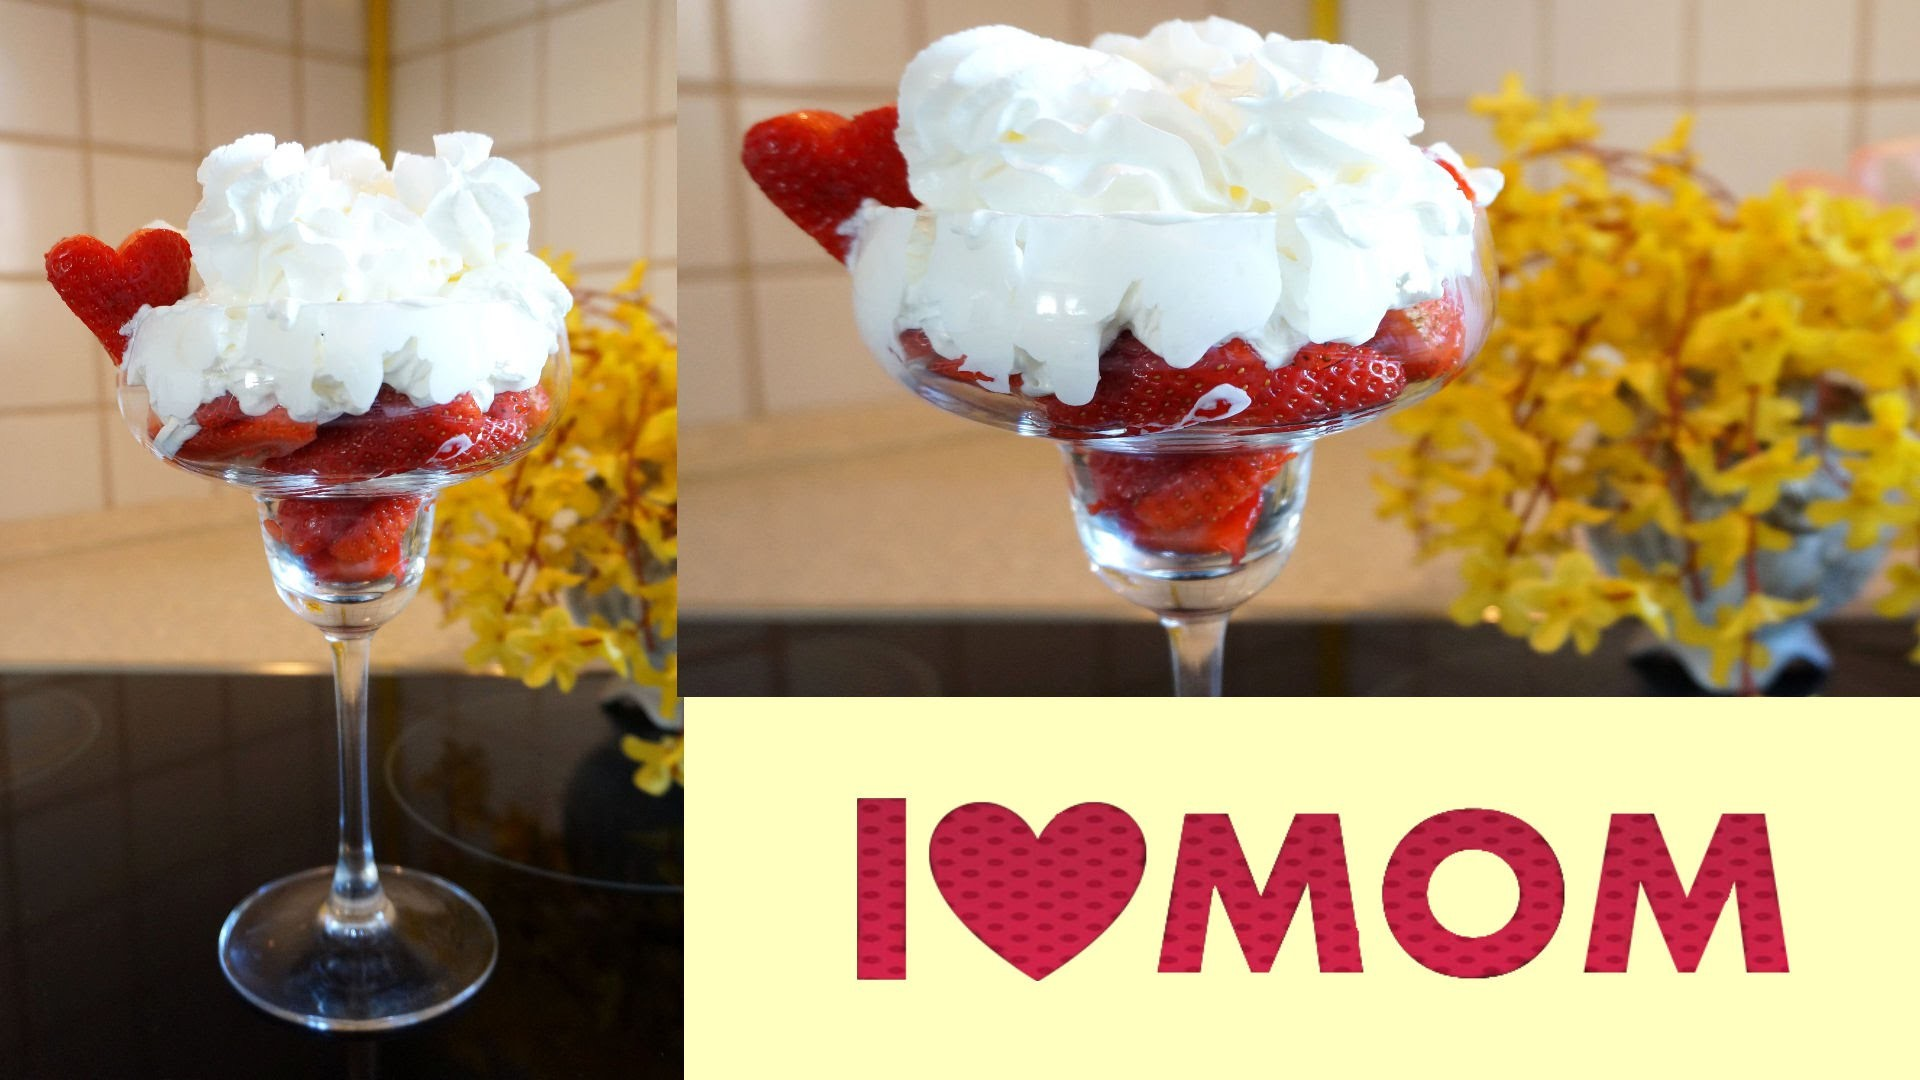 5 Minutes DIY Dessert Quick Easy How to make I LOVE MOM Strawberry dessert for mother's day